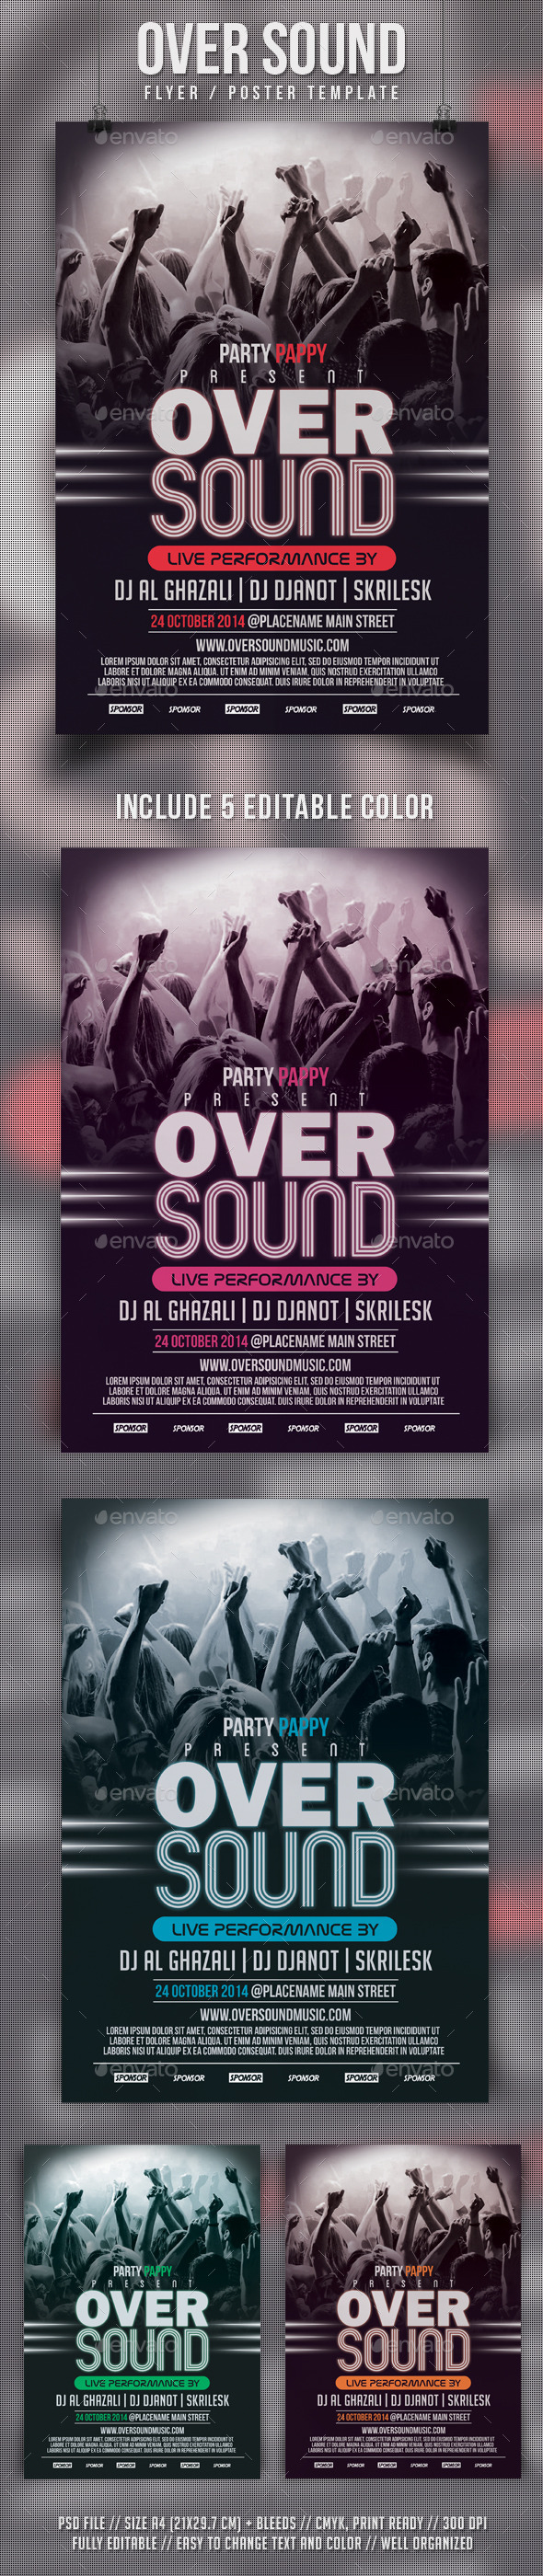 Oversound Flyer Template - Clubs & Parties Events